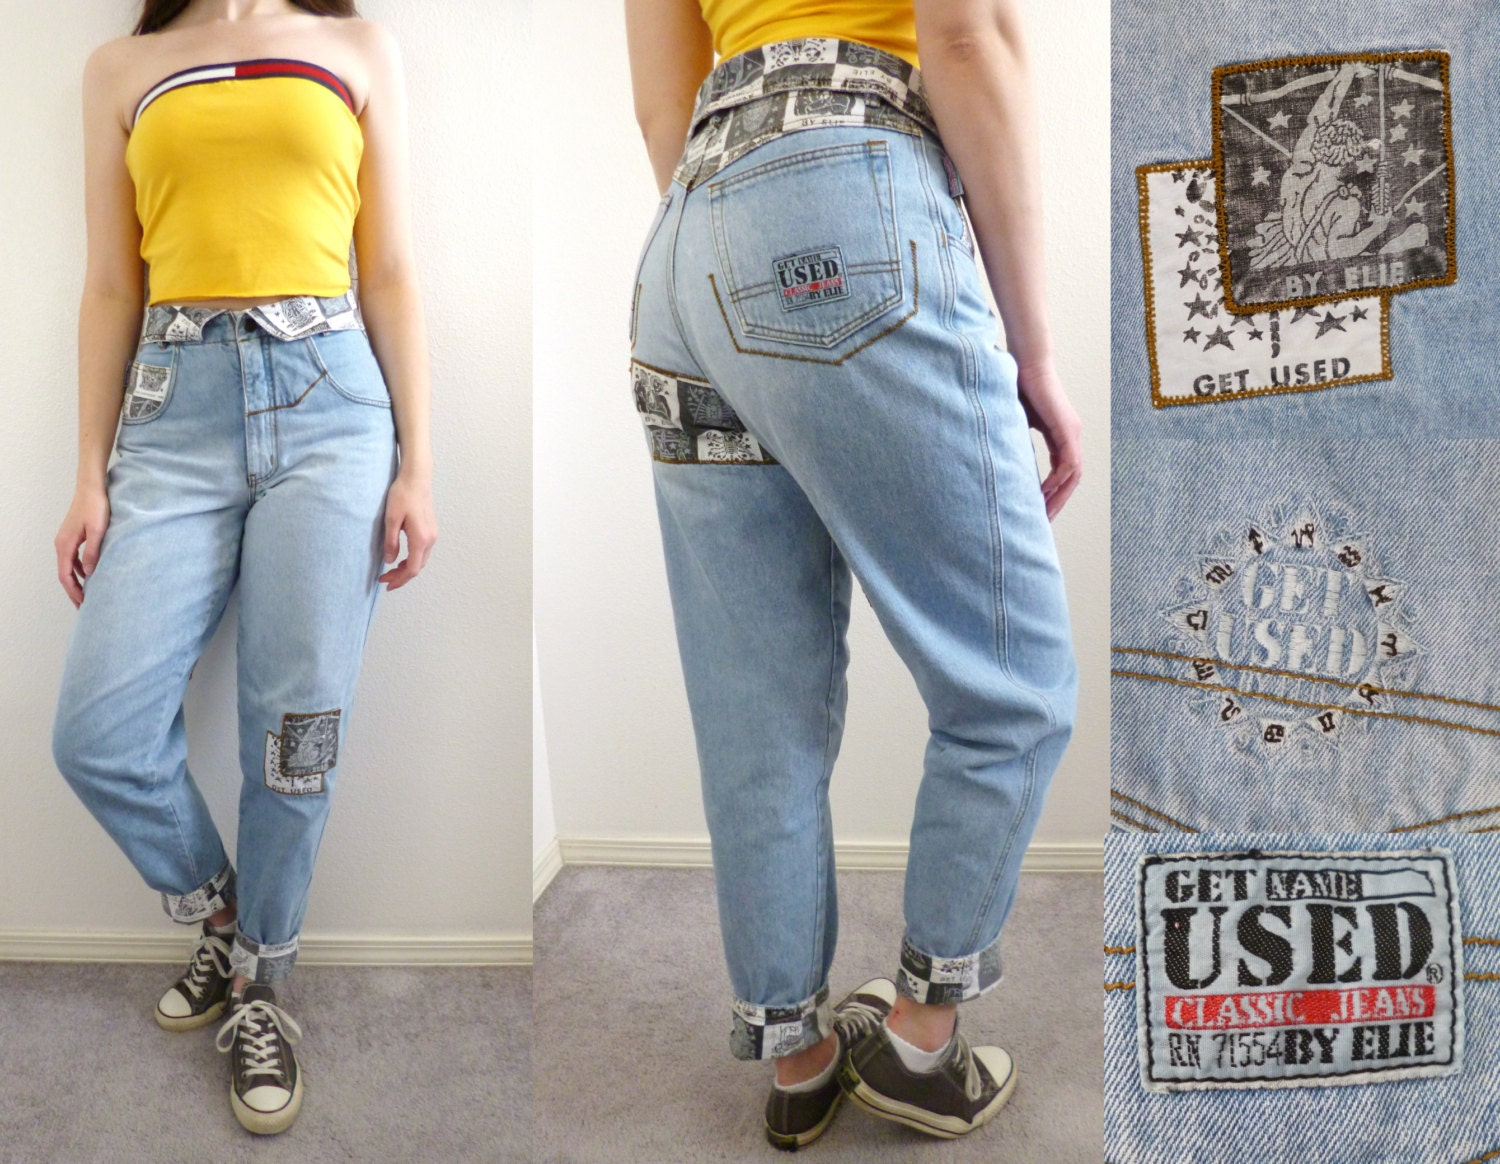 VTG 90s Get Used By Elie Jeans High Waist Tapered Baggy Size S